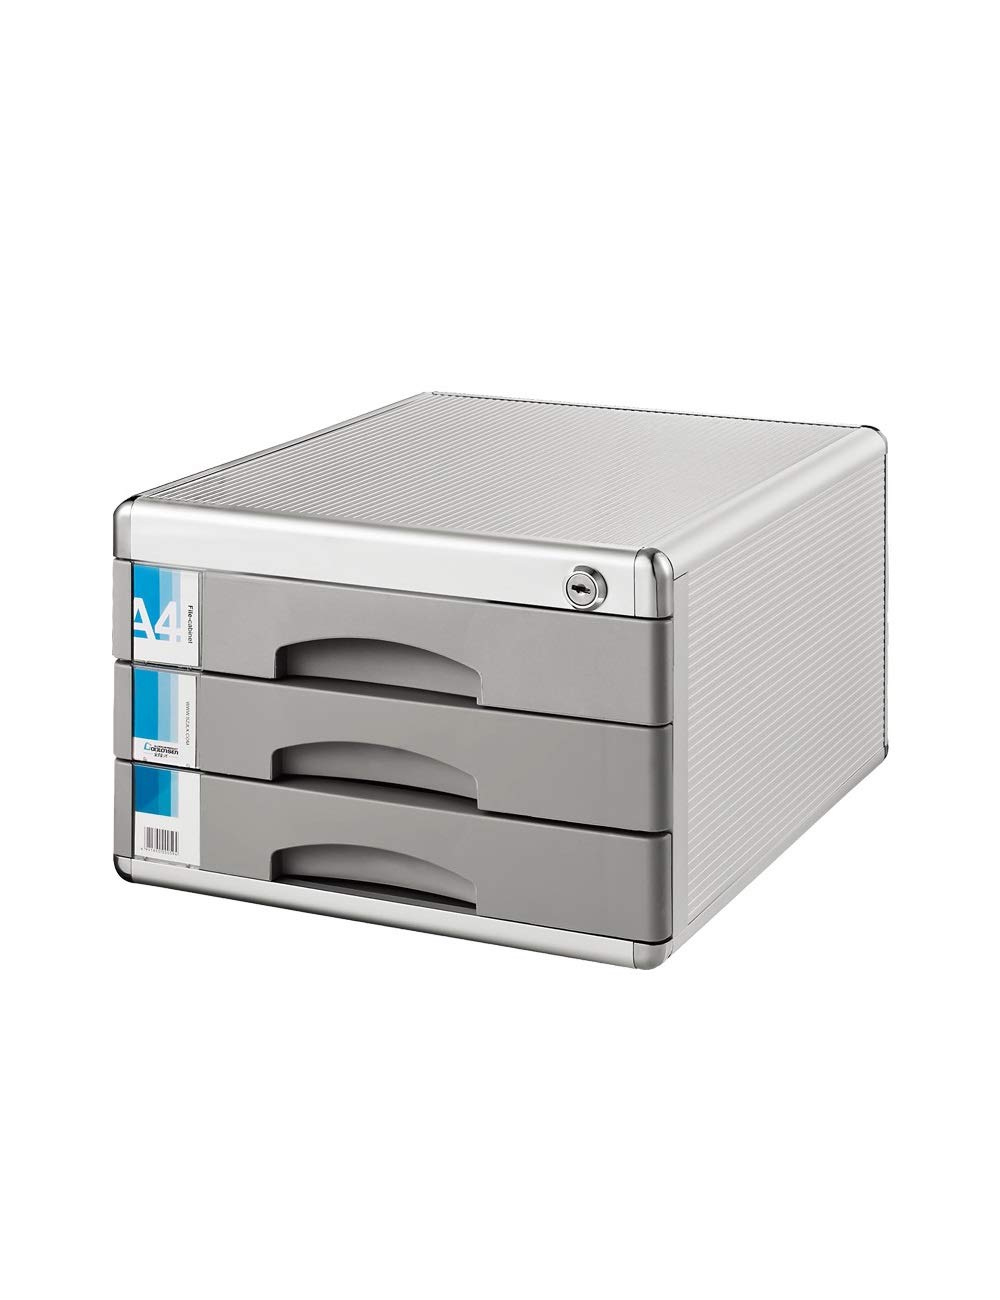 File Cabinet Family Office Desktop Cabinet Storage Cabinet 3 Drawers File Storage Cabinet Aluminum Alloy, Medium Fiber Board 300x360x205mm Filing cabinets